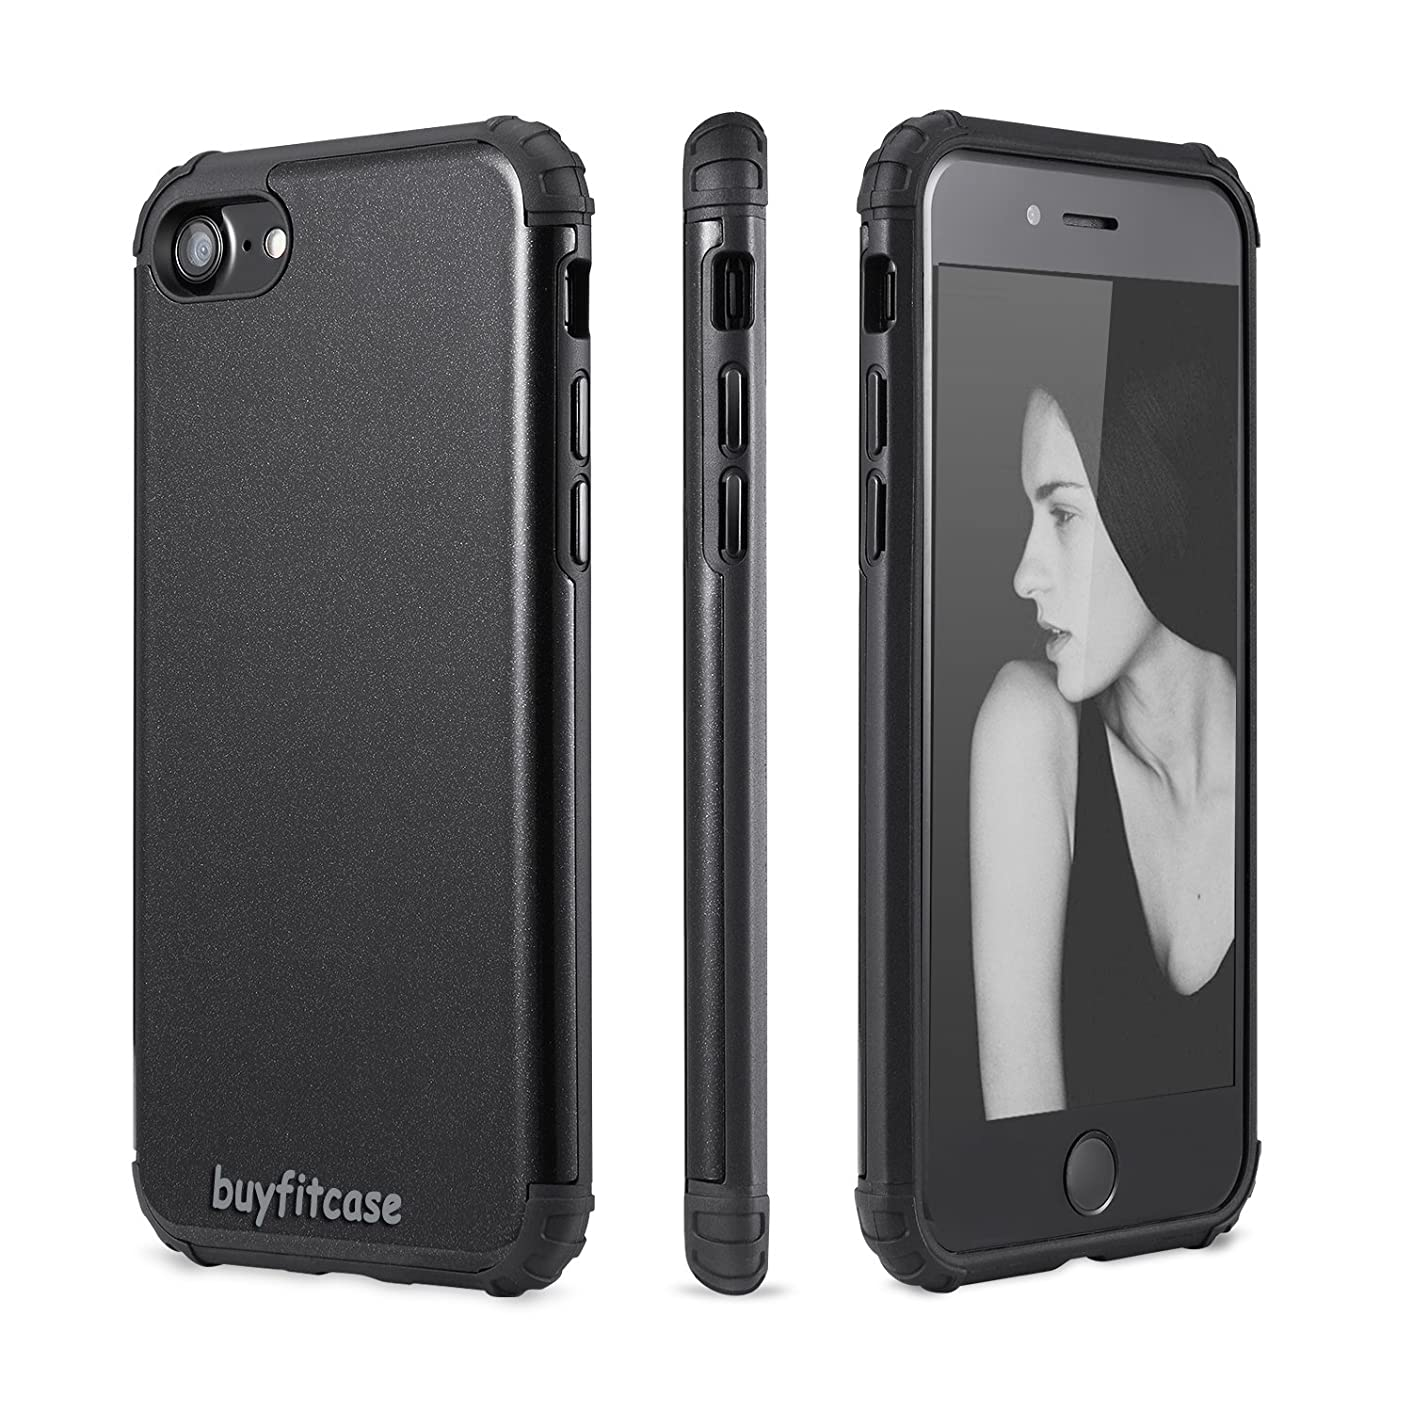 IIGOCG iPhone 7 Plus Case Heavy Duty Dual Layer Ultra Armor Shock Absorbing Case Integrated Magnetic Metal Case Cover With Free Screen Protector For iPhone 7 Plus,Black